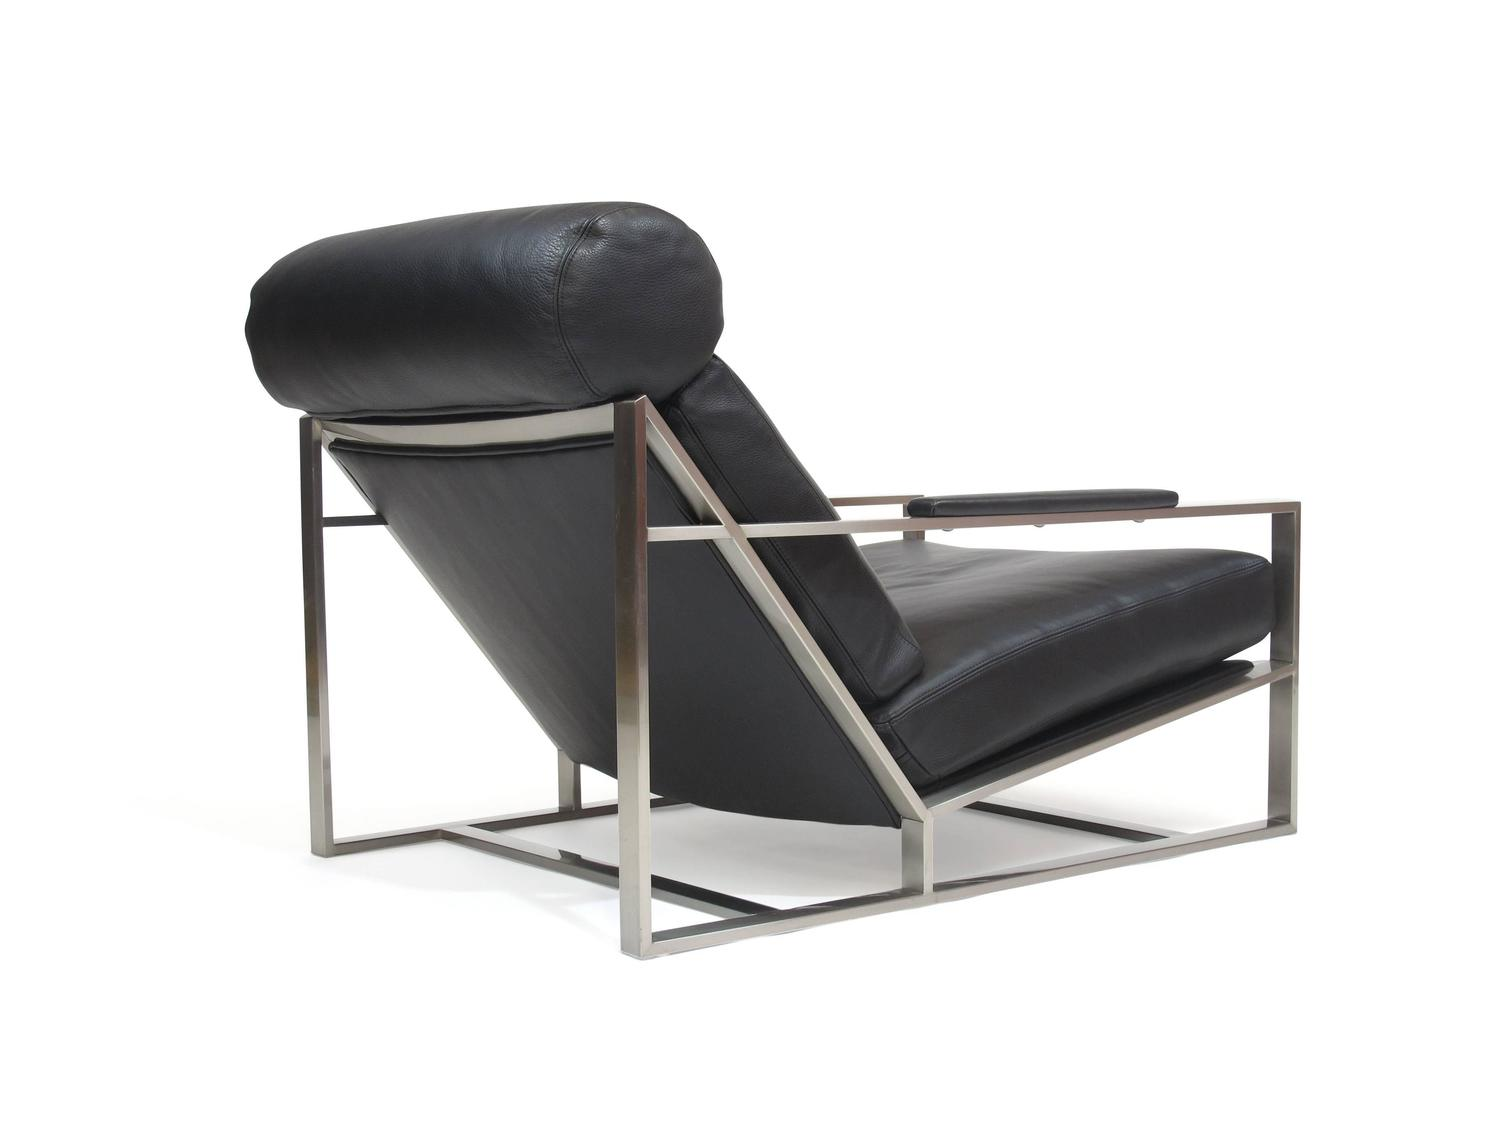 steel lounge chair gold wing back chairs milo baughman for thayer coggin in